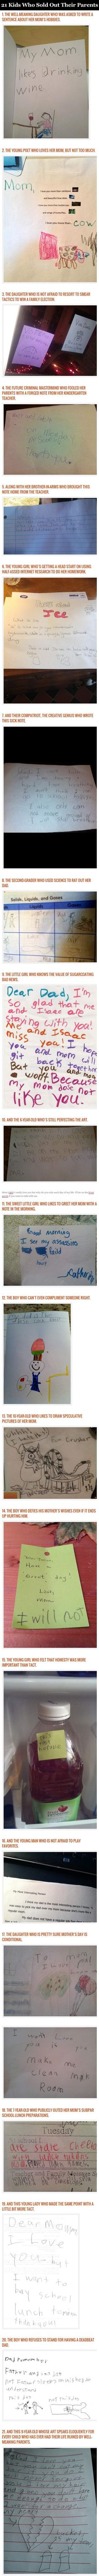 21 Kids Who Sold Out Their Parents funny parents lol parenting humor funny pictures funny kids hysterical funny images